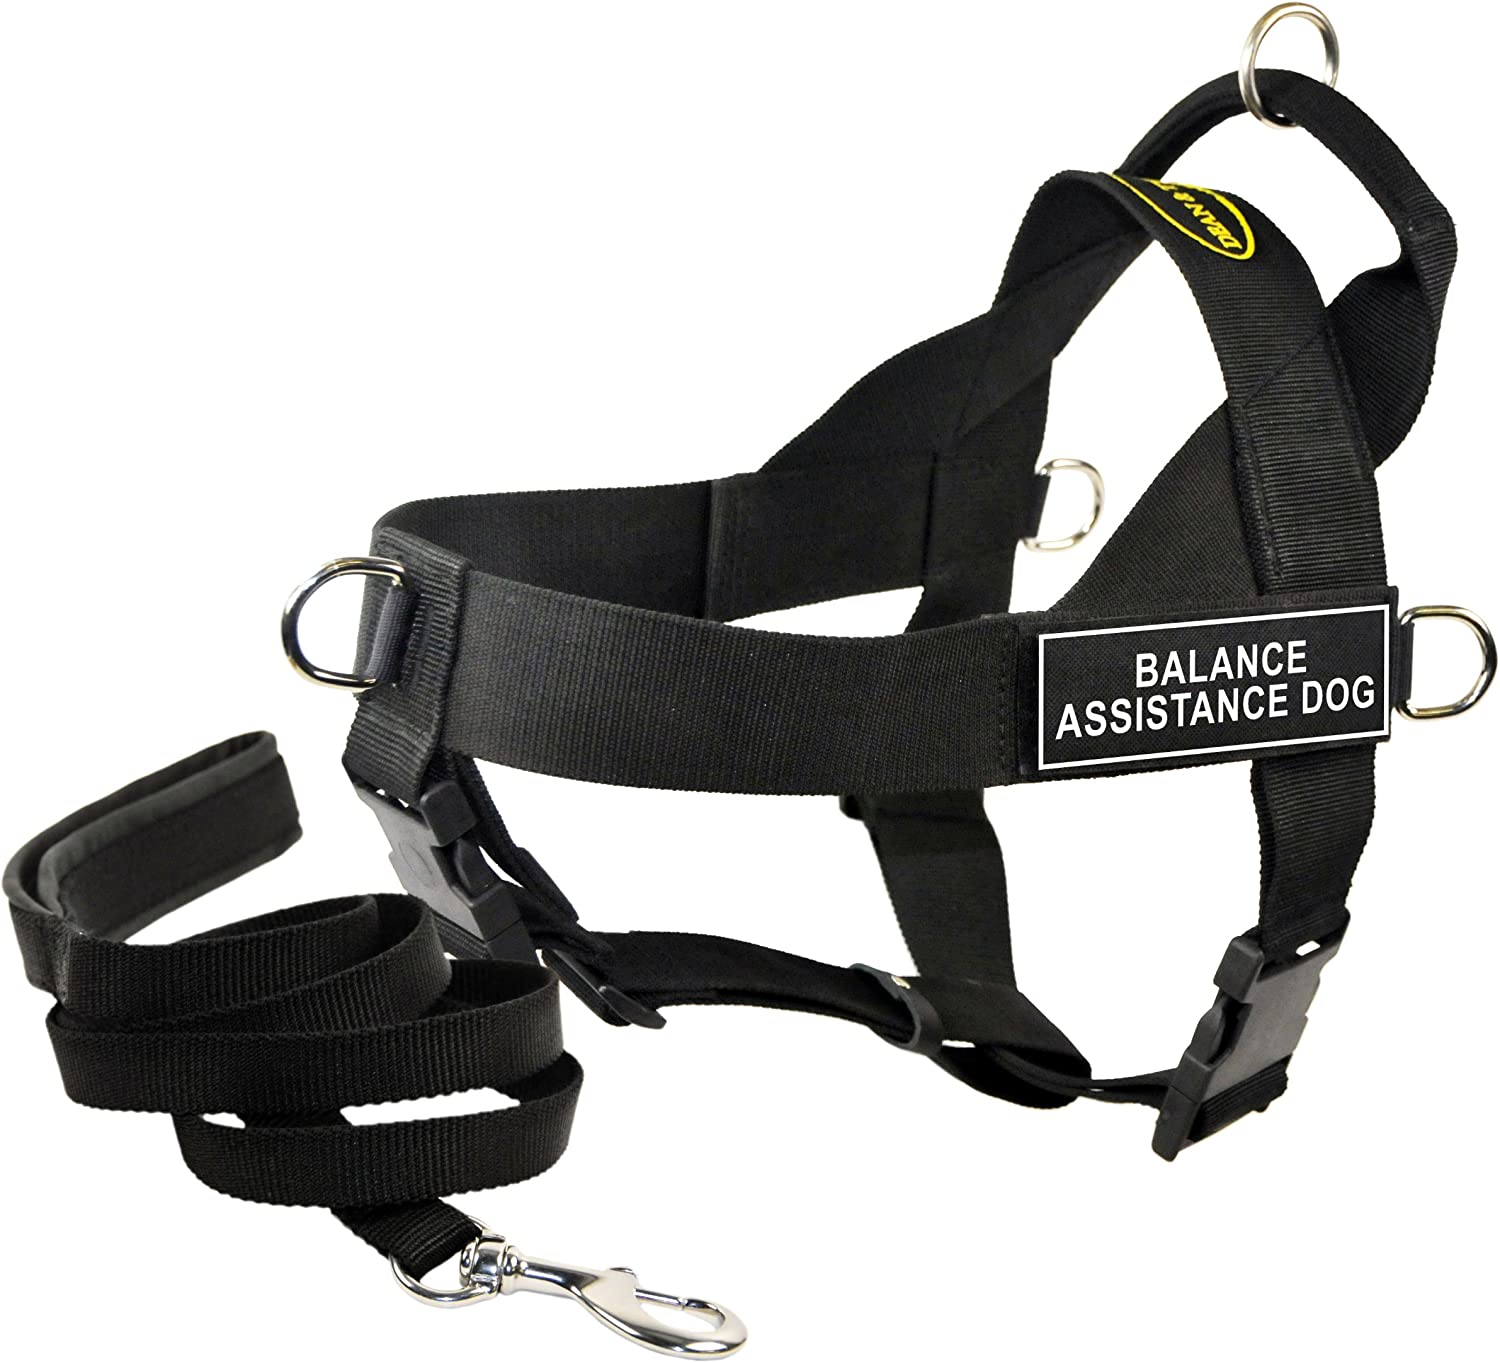 Dean & Tyler's DT Universal BALANCE ASSISTANCE DOG Harness, Small, with 6 ft Padded Puppy Leash.